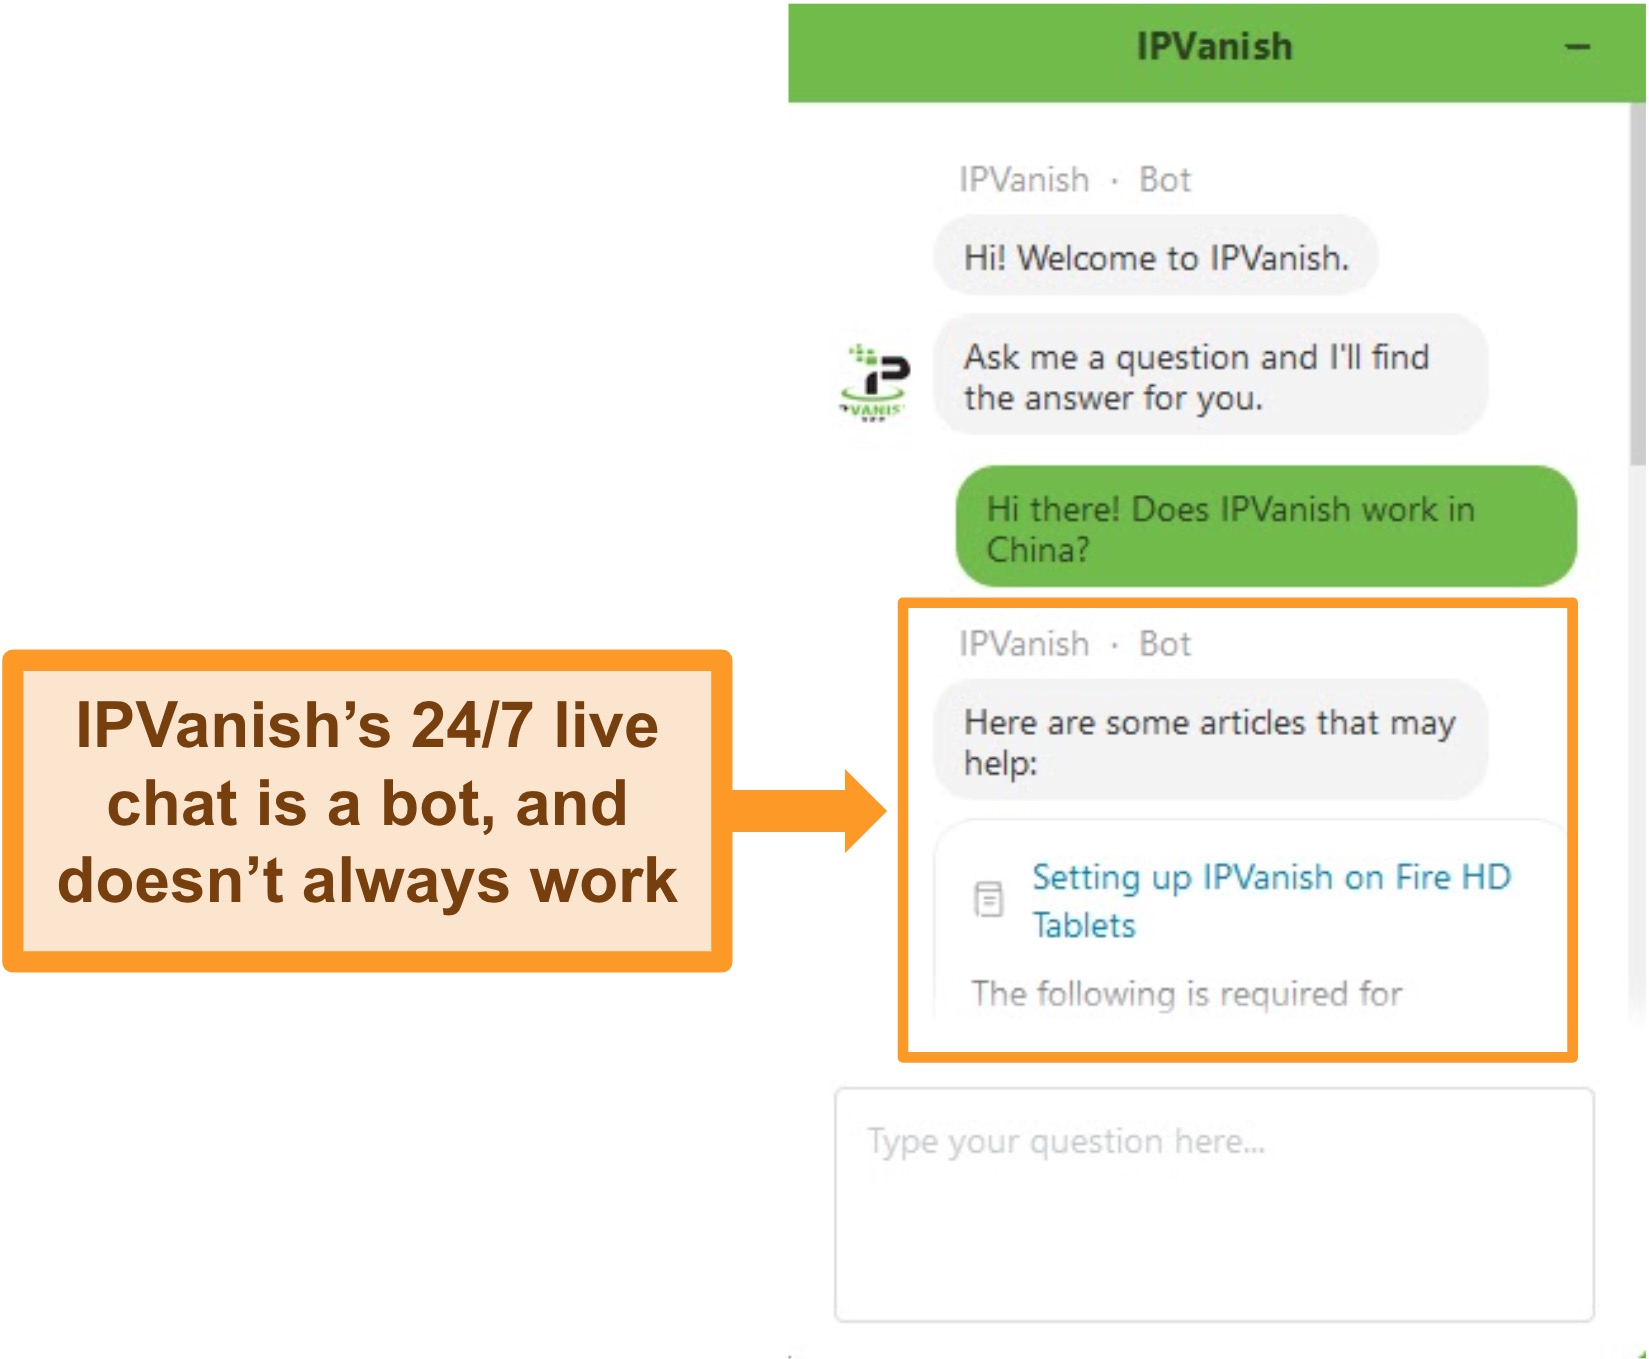 Screenshot of IPVanish's support chat bot answering a question